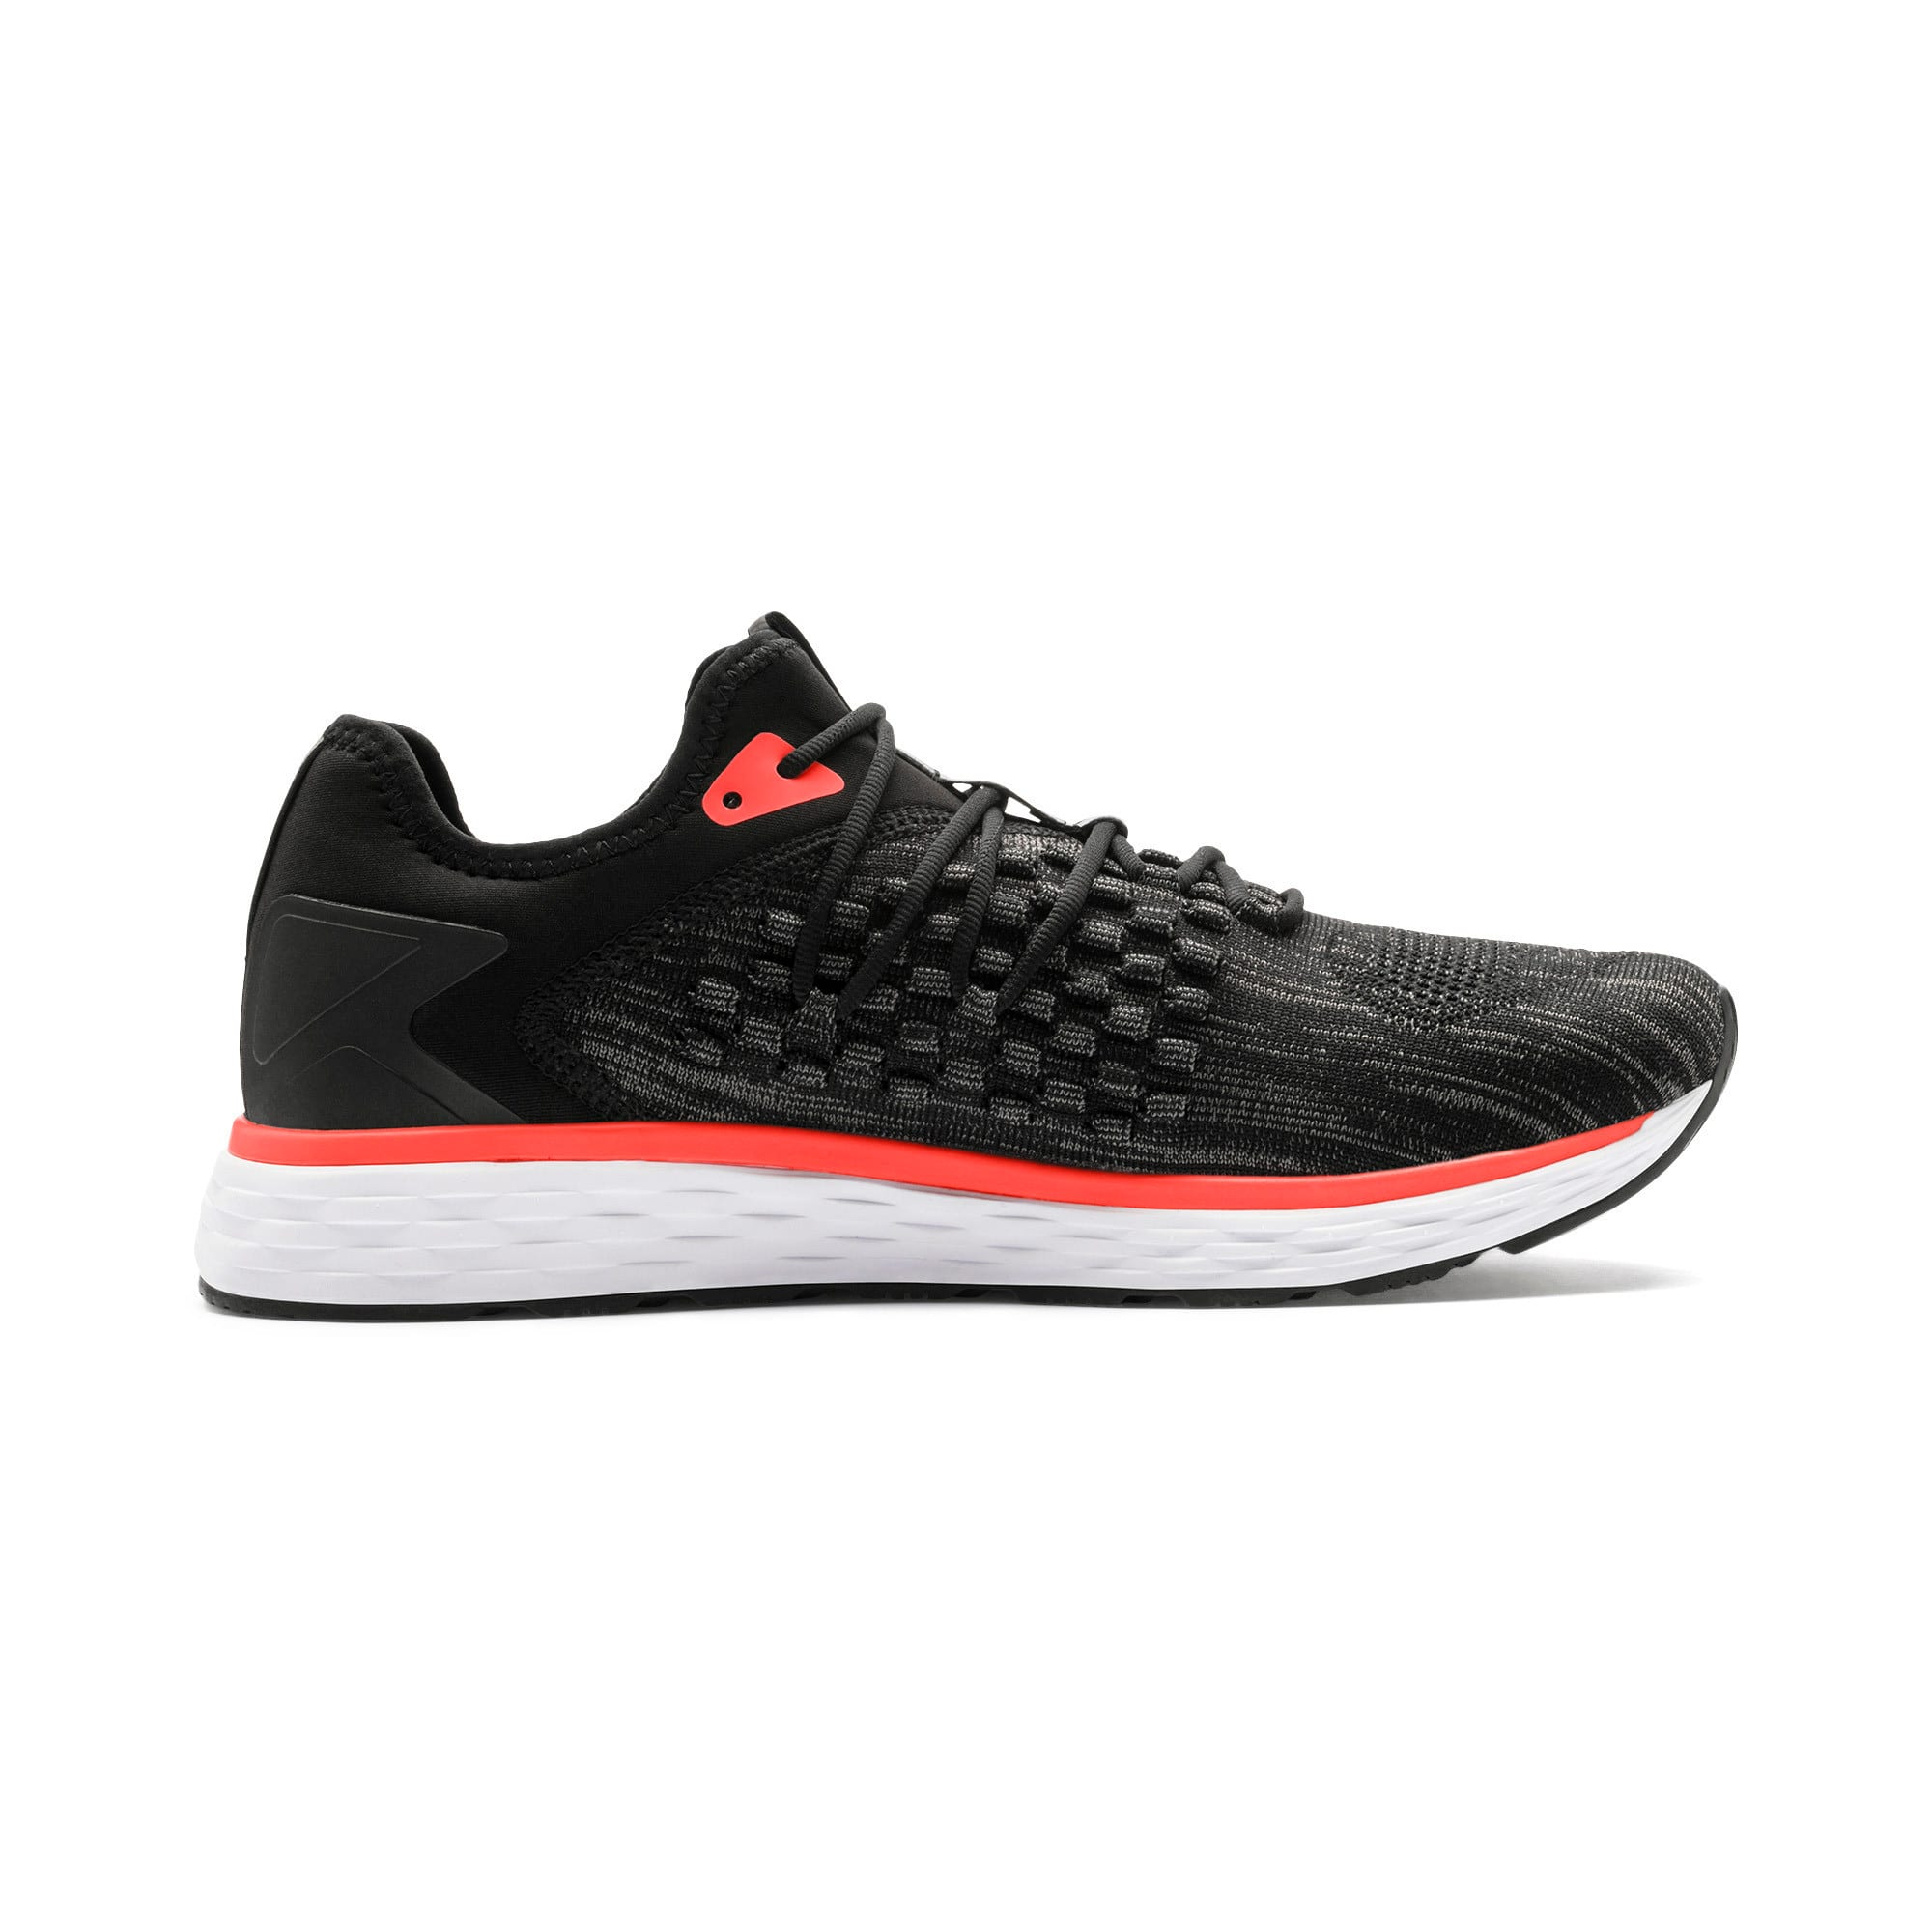 Thumbnail 7 of SPEED FUSEFIT Men's Running Shoes, Puma Black-Nrgy Red, medium-IND